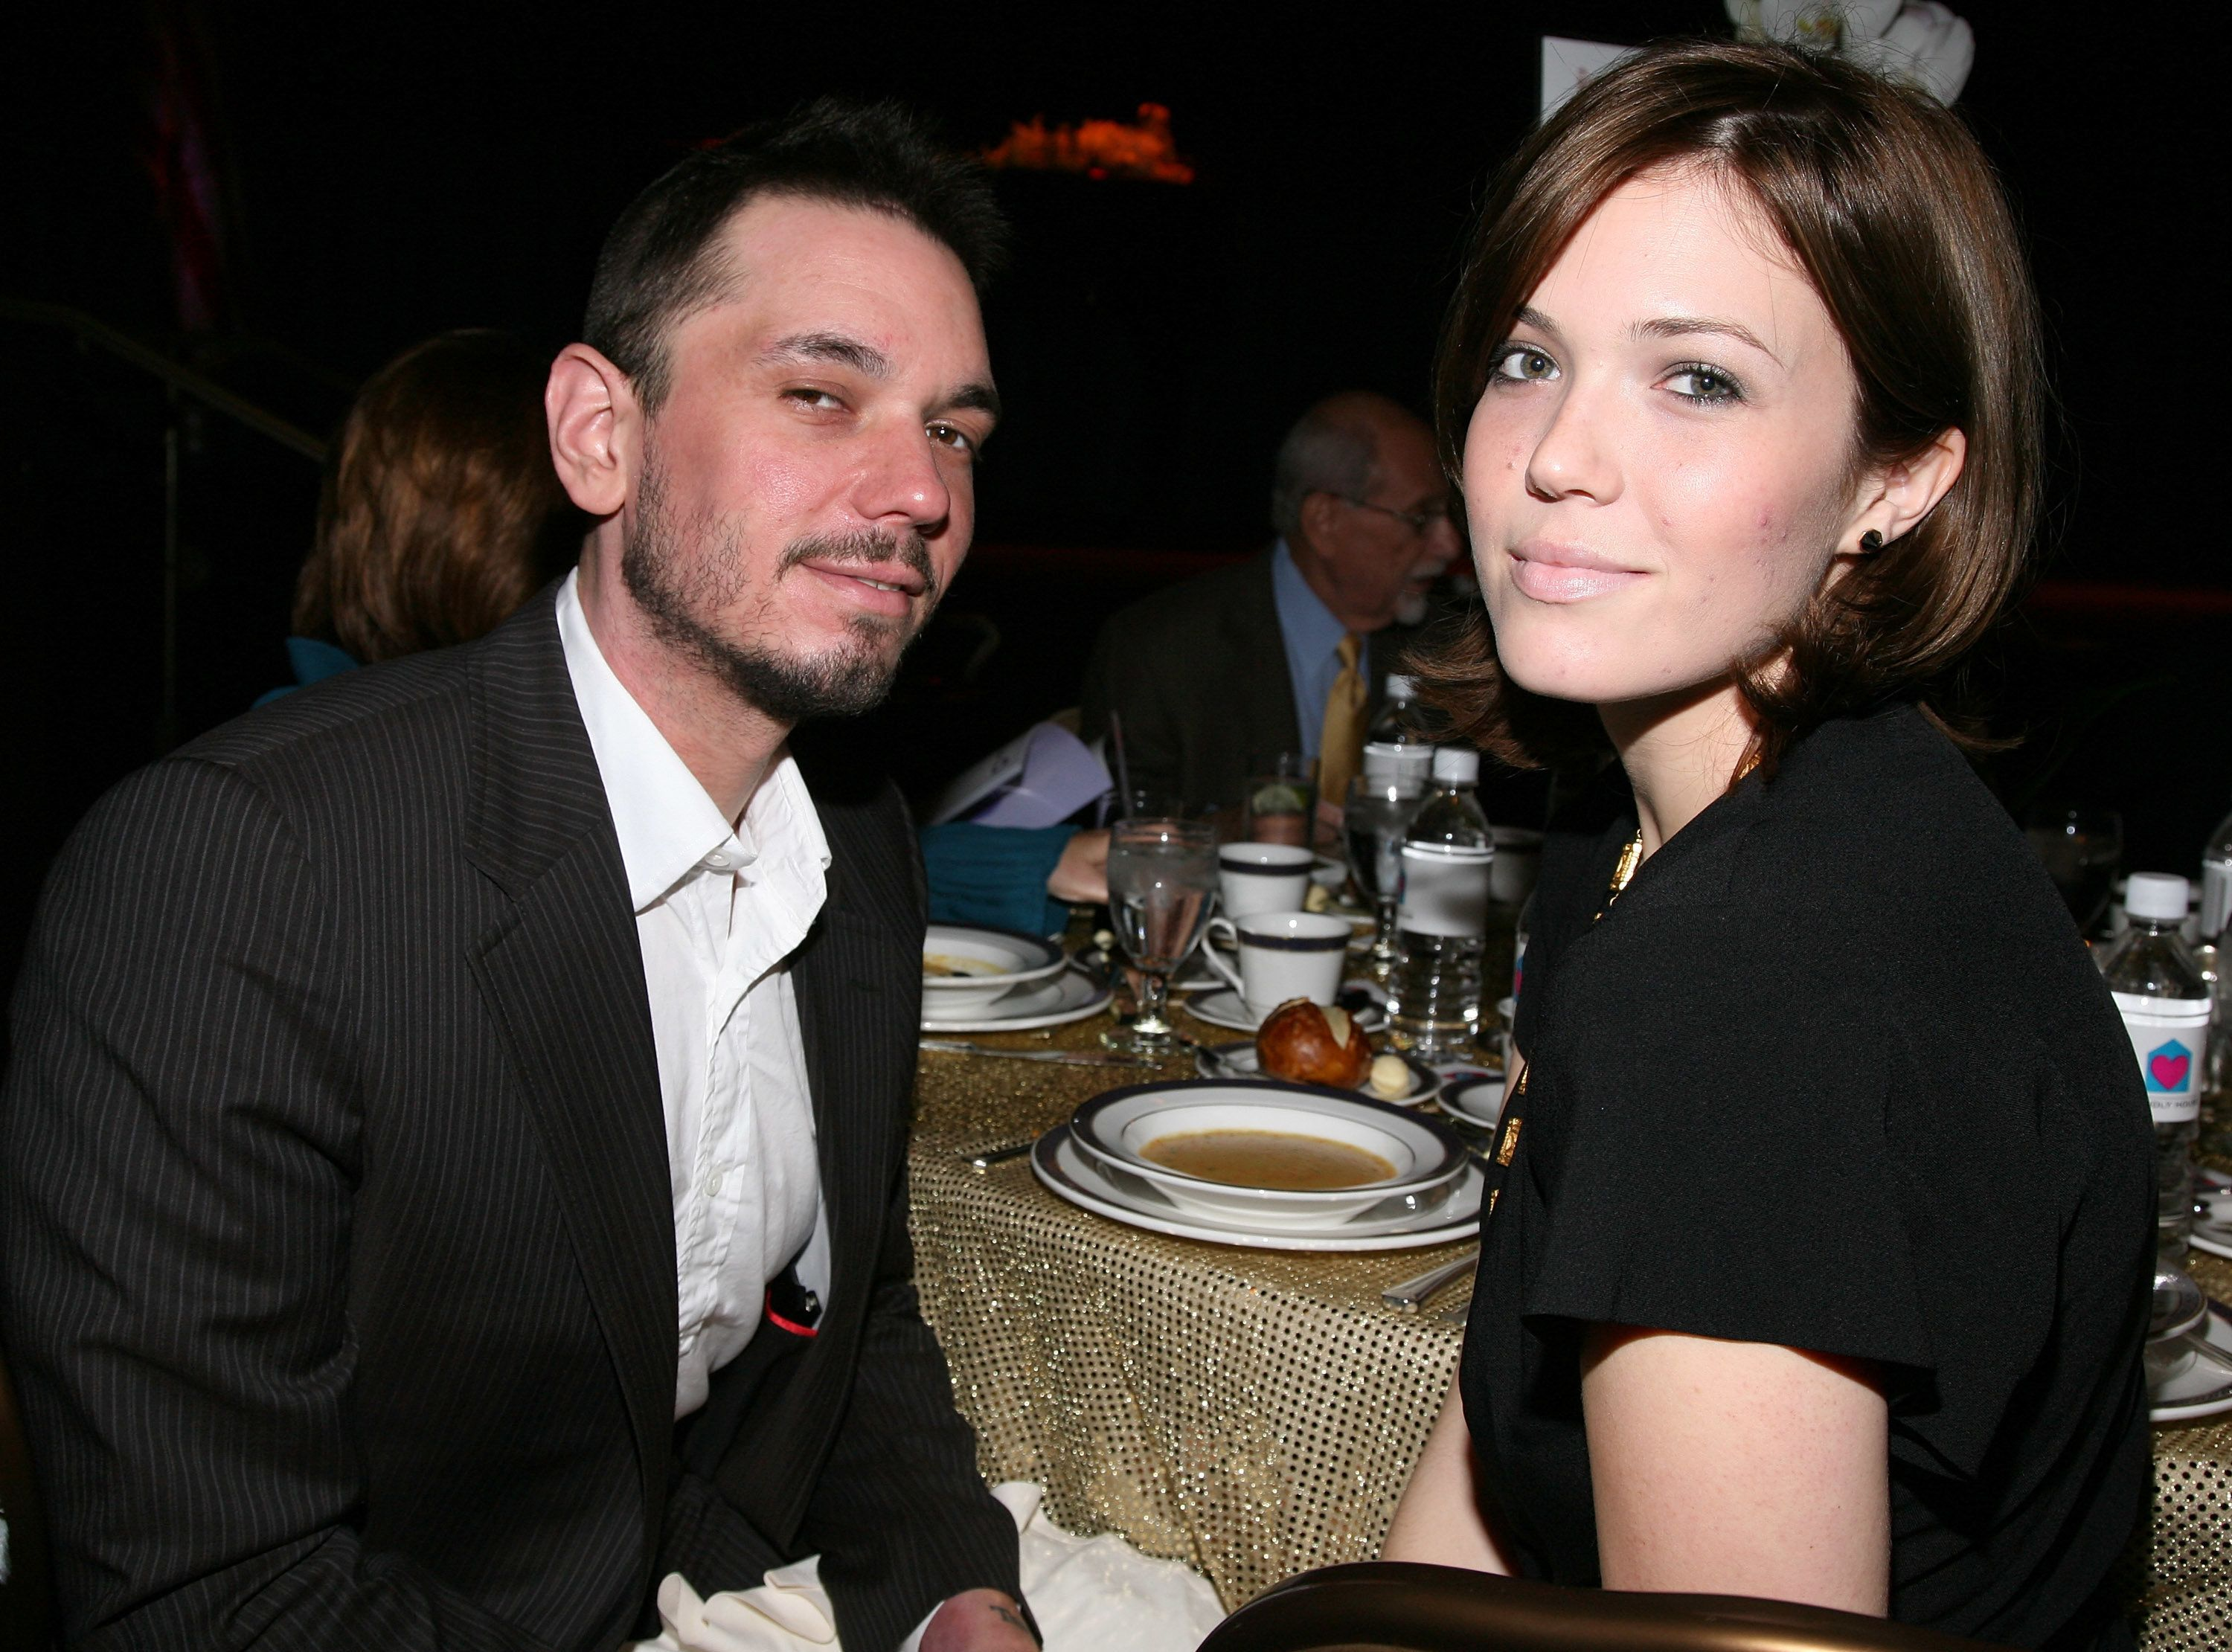 BEVERLY HILLS, CA - OCTOBER 18:  Adam Goldstein (DJ AM) and Mandy Moore attend the Friendly House 19th Annual Awards Luncheon at the Beverly Hilton Hotel on October 18, 2008 in Beverly Hills, California.  (Photo by Angela Weiss/Getty Images)